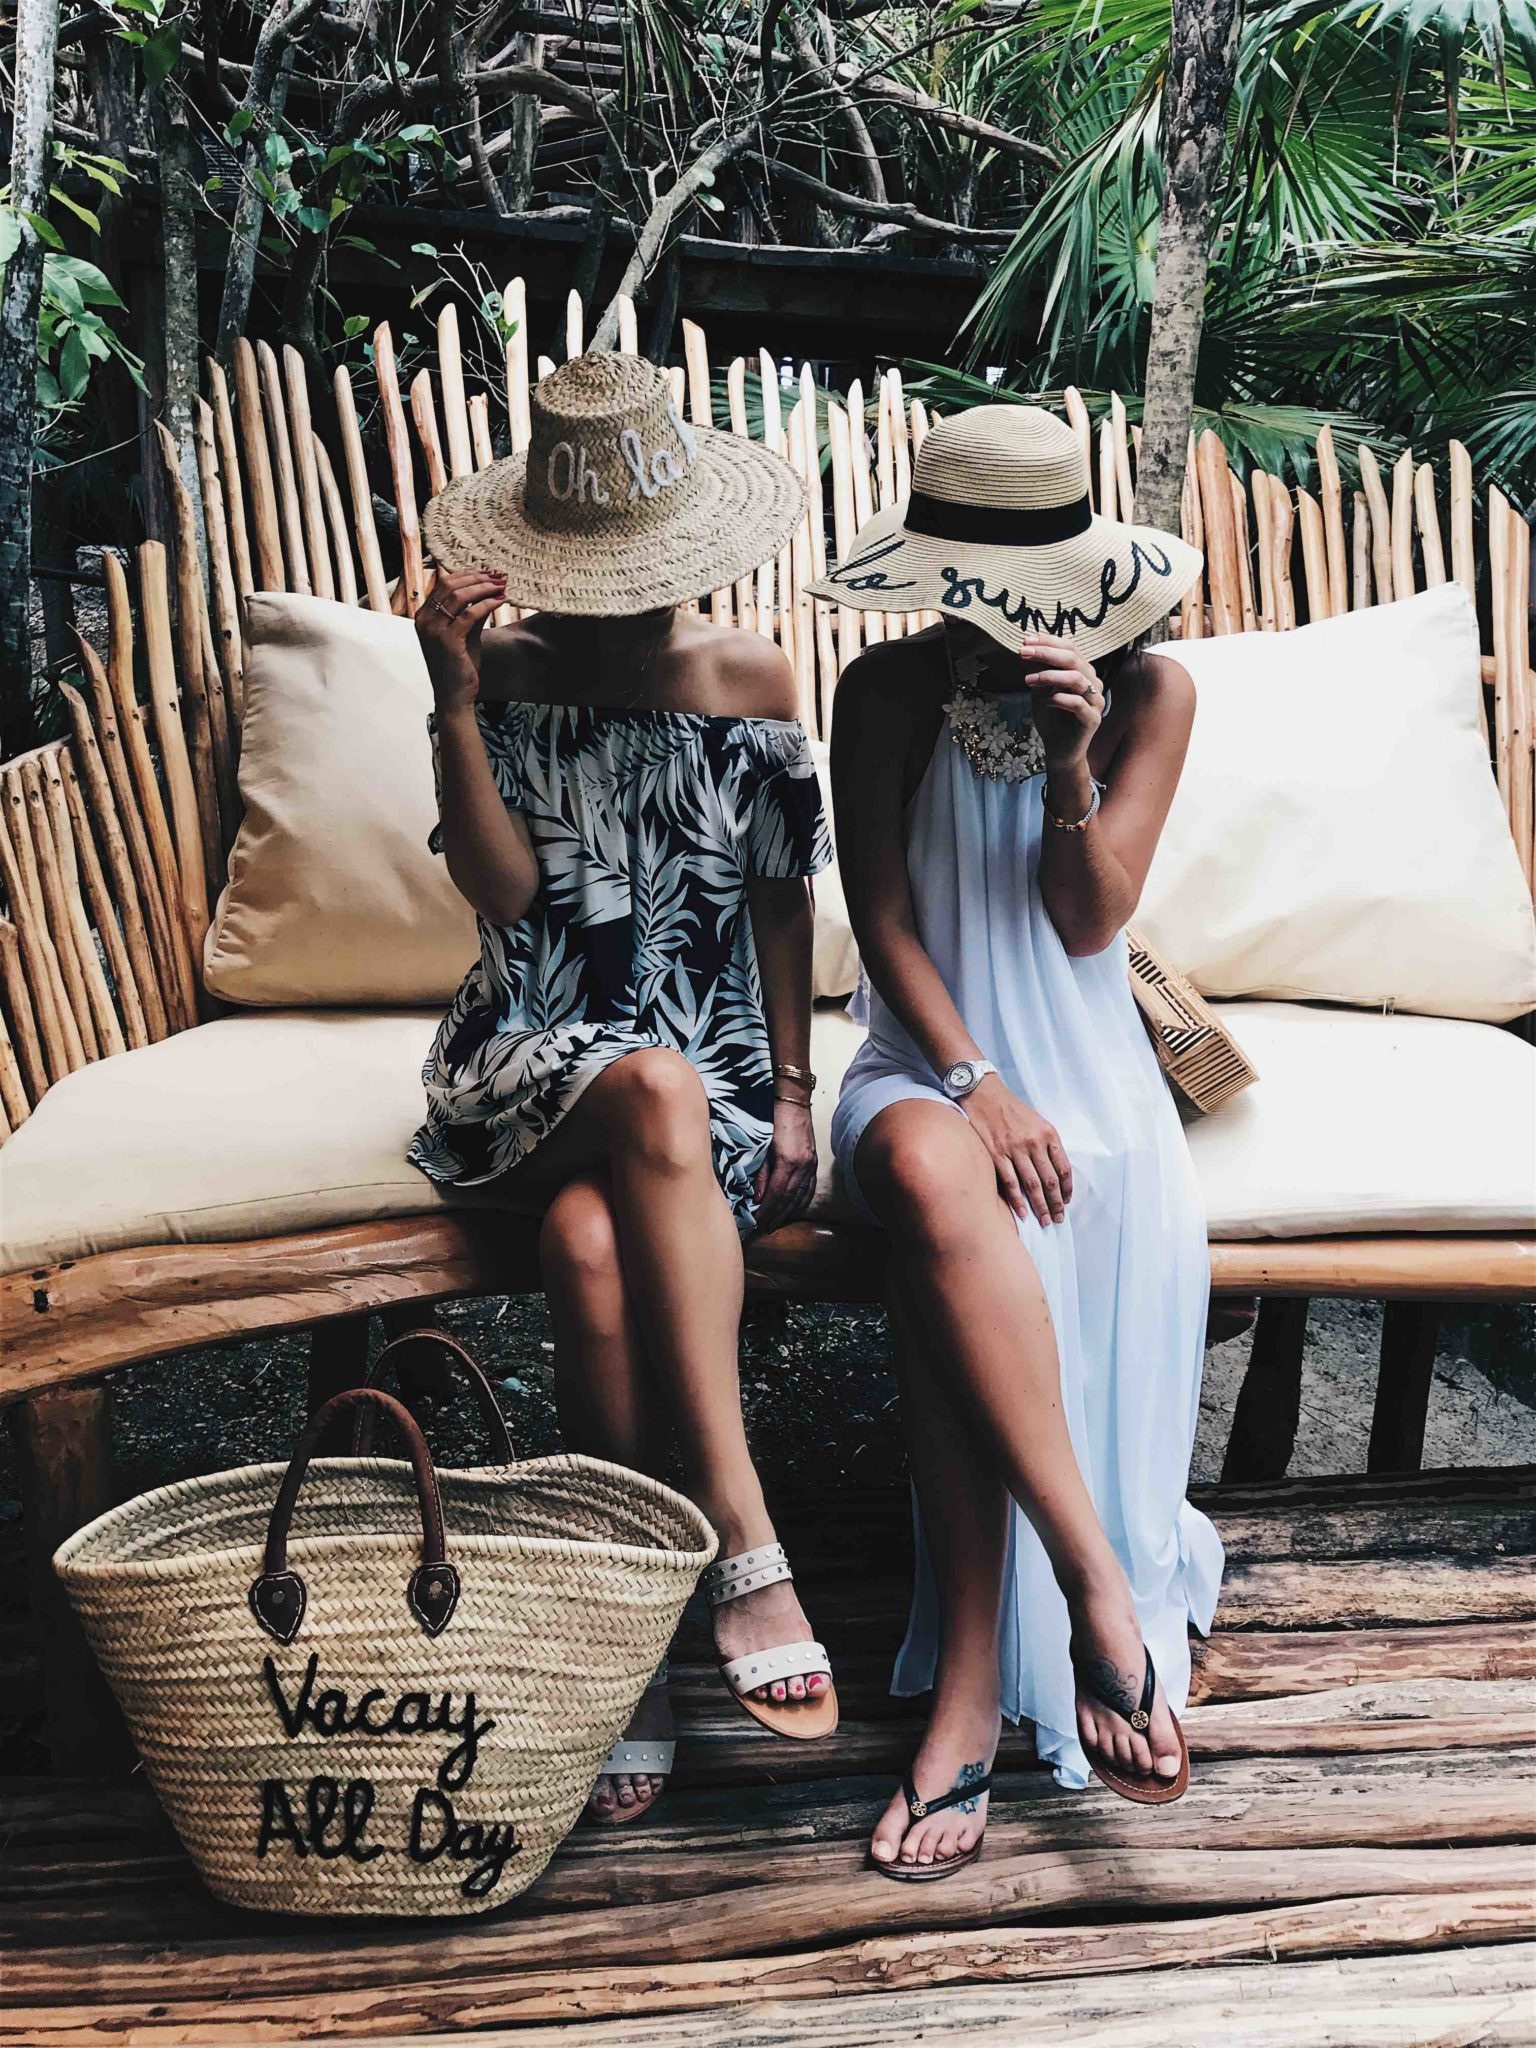 DTKAustin is sharing her must have straw summer accessories. From straw hats with fun sayings to colorful beach totes, it's all in this post! Click for more information and photos. | Must Have Summer Straw Pool & Beach Accessories | summer straw hat accessories | summer beach accessories | summer straw hat style | summer beach style | straw hat fashion | must have straw hats || Dressed to Kill